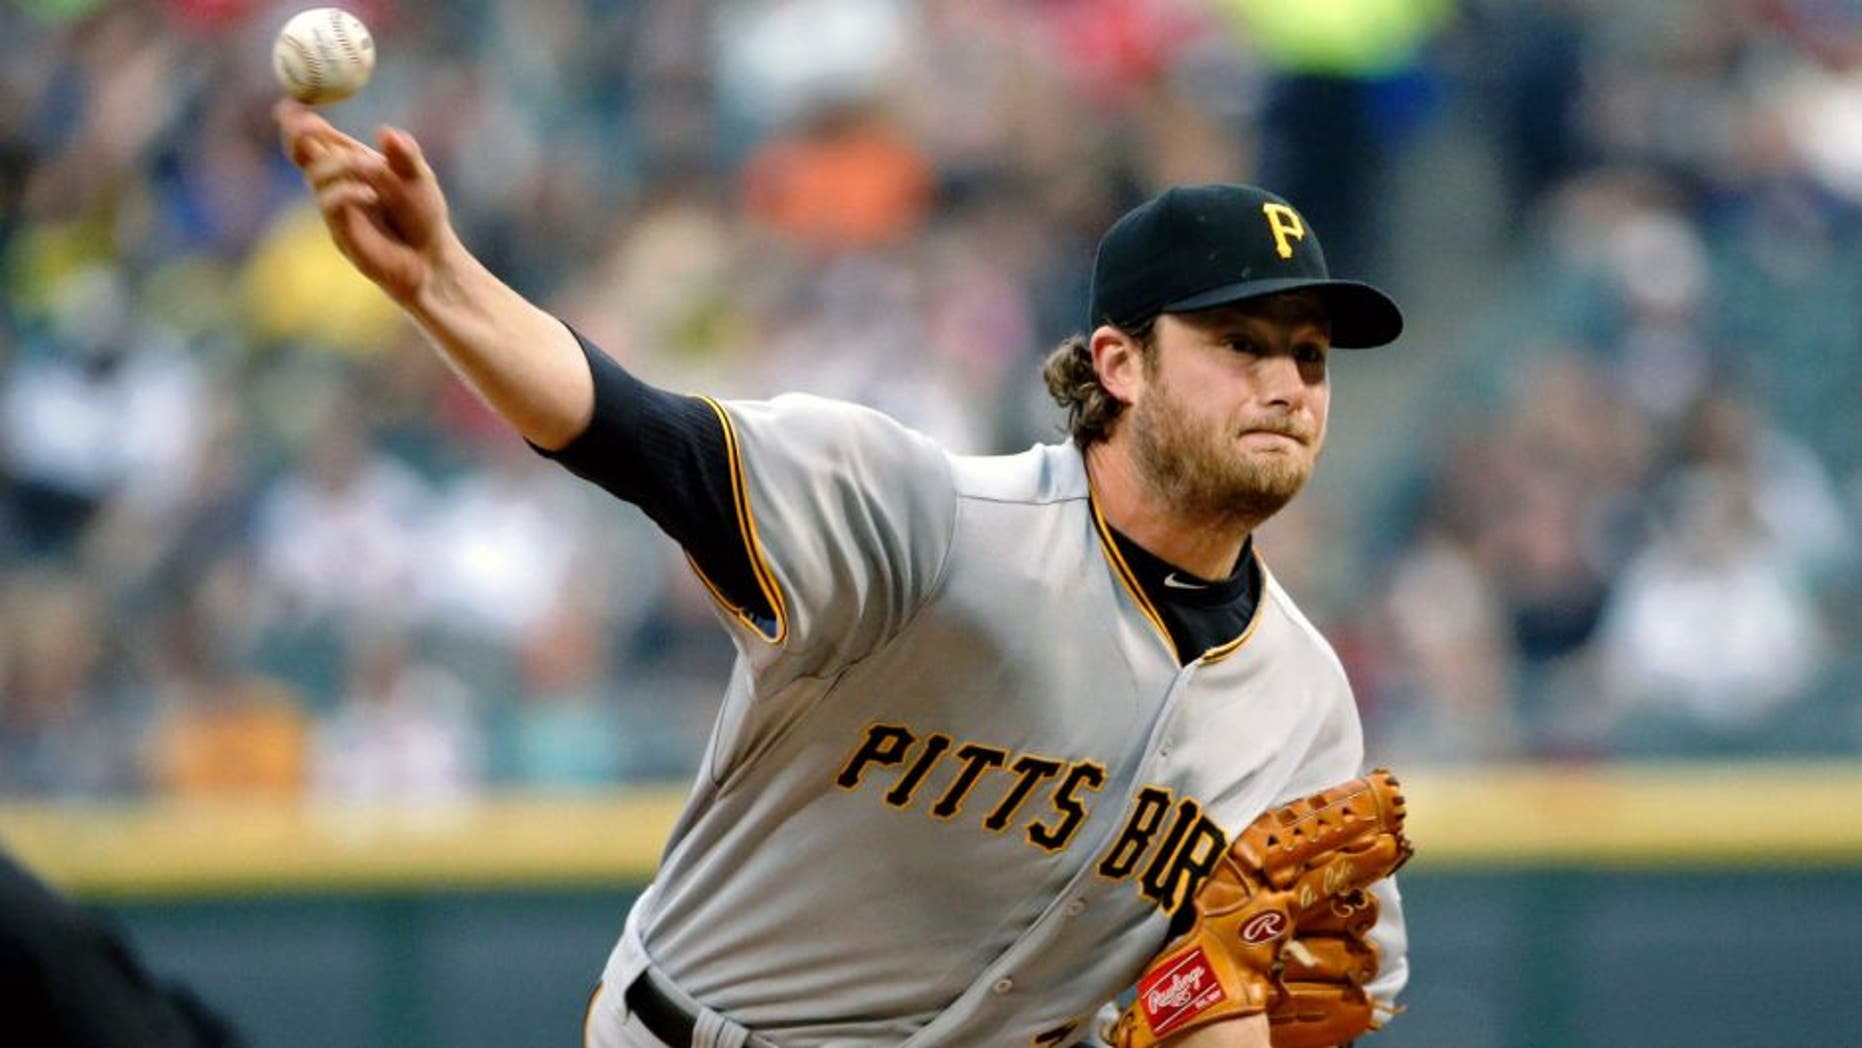 CHICAGO, IL - JUNE 18: Gerrit Cole #45 of the Pittsburgh Pirates pitches against the Chicago White Sox during the first inning at U.S. Cellular Field on June 18, 2015 in Chicago, Illinois. (Photo by Jon Durr/Getty Images)